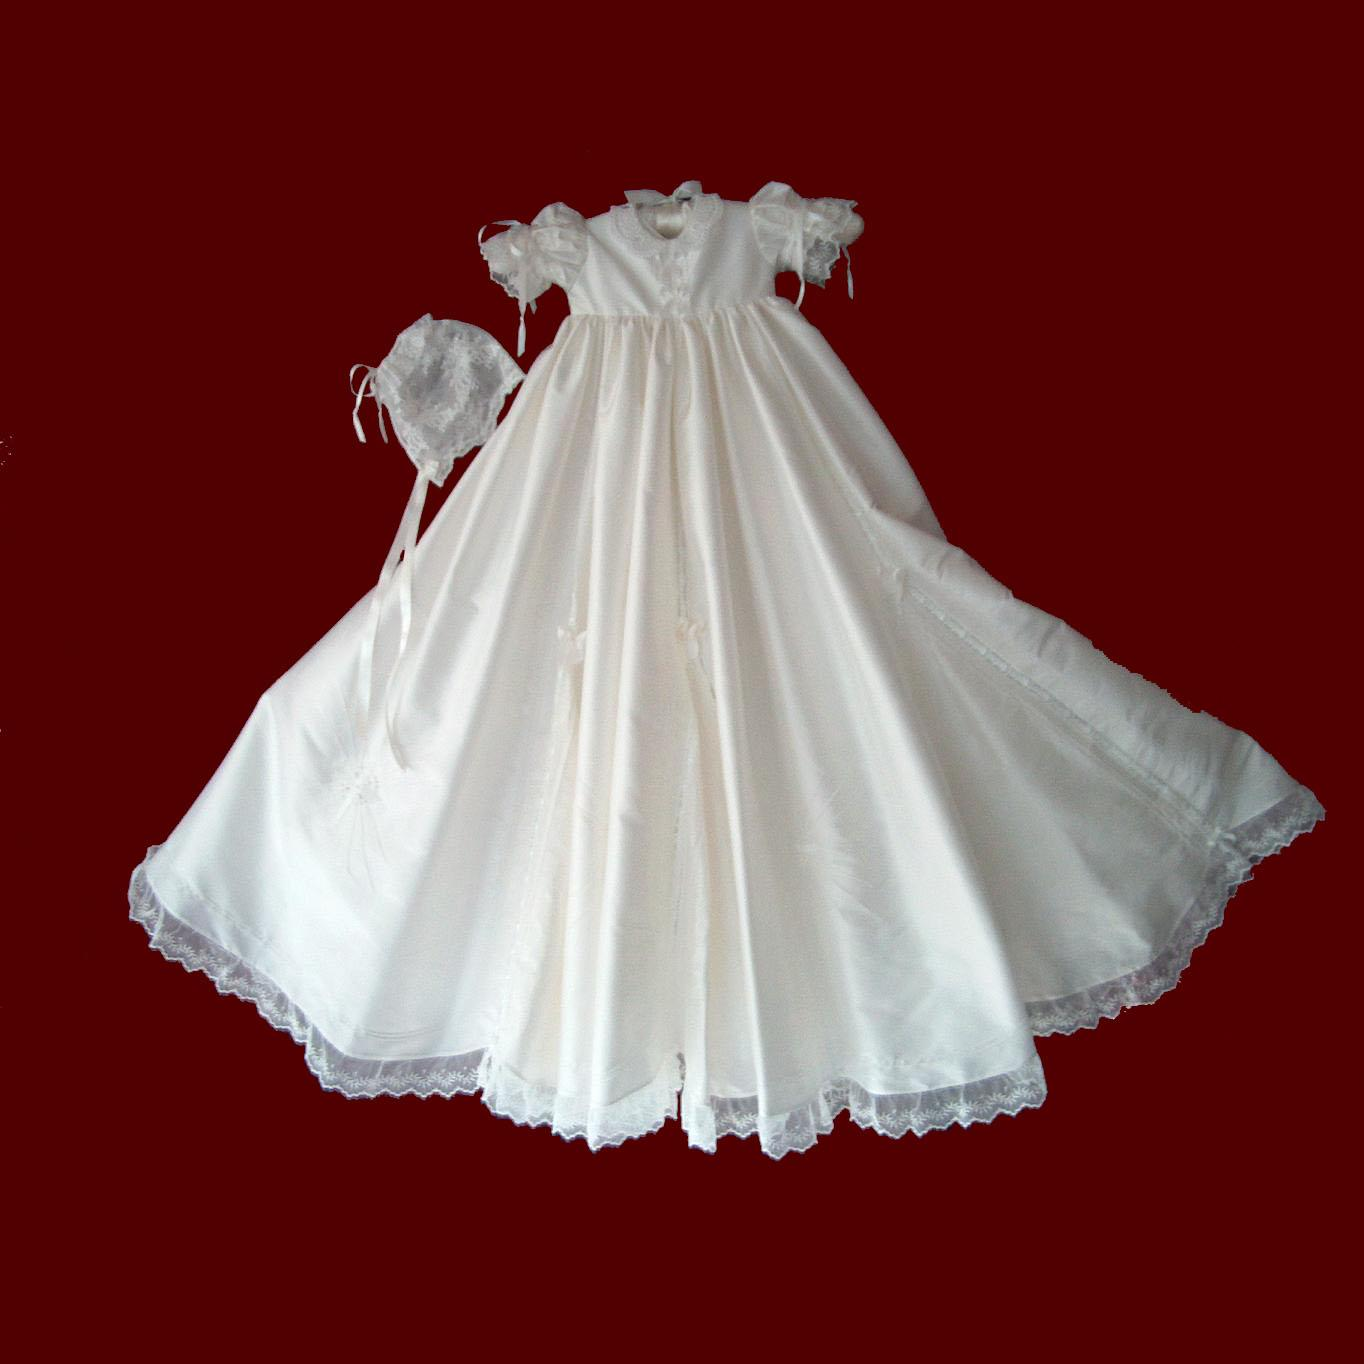 Girls Silk Christening Gown with Gores & Godets - The Royal ...